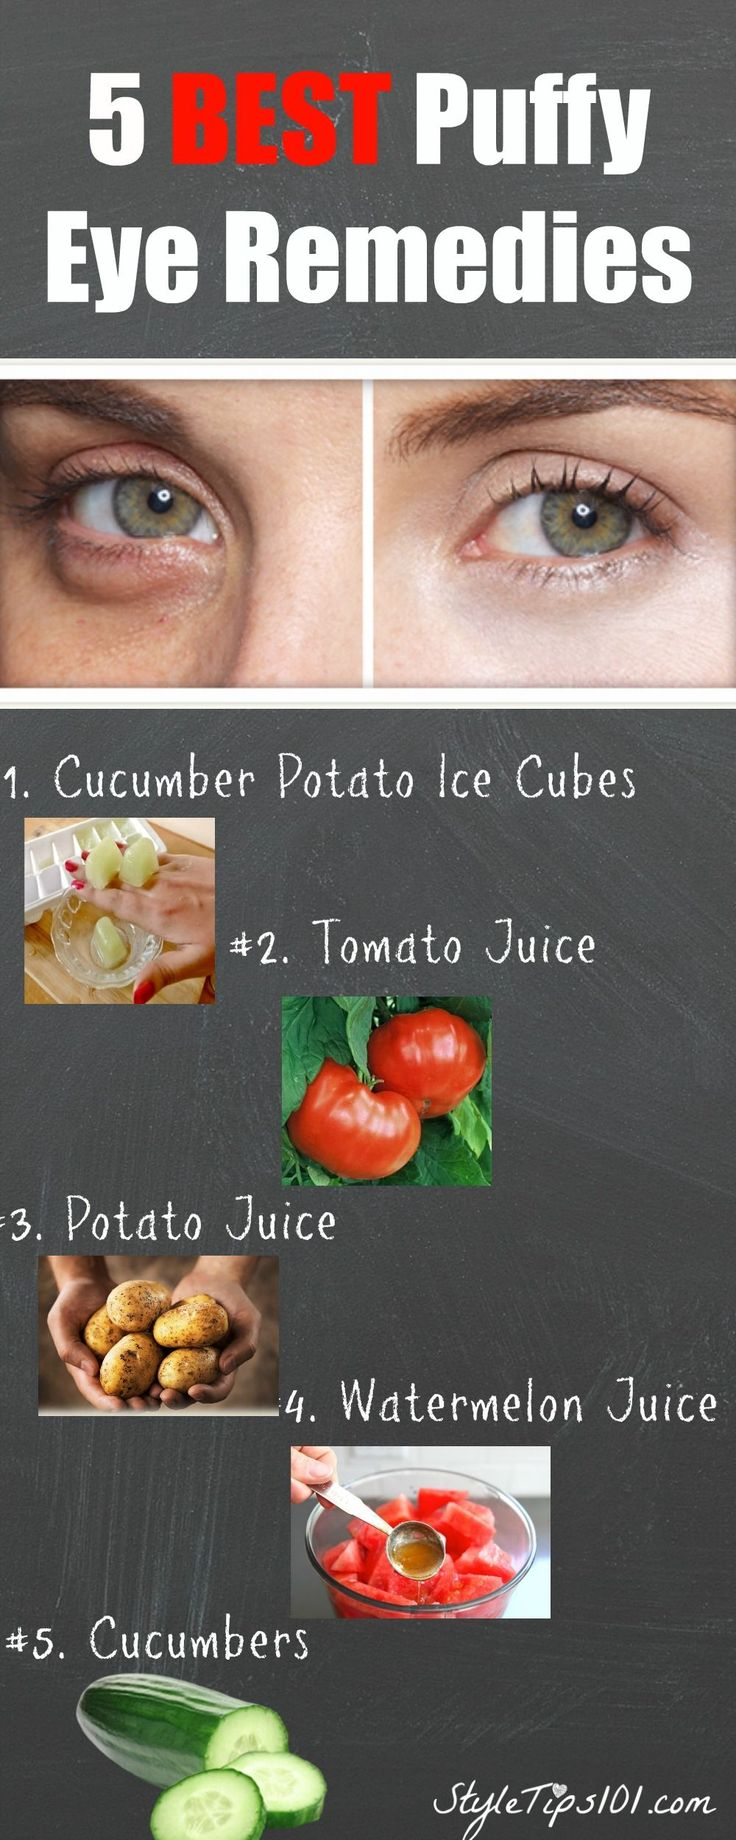 All natural homemade puffy eye remedies that actually WORK!